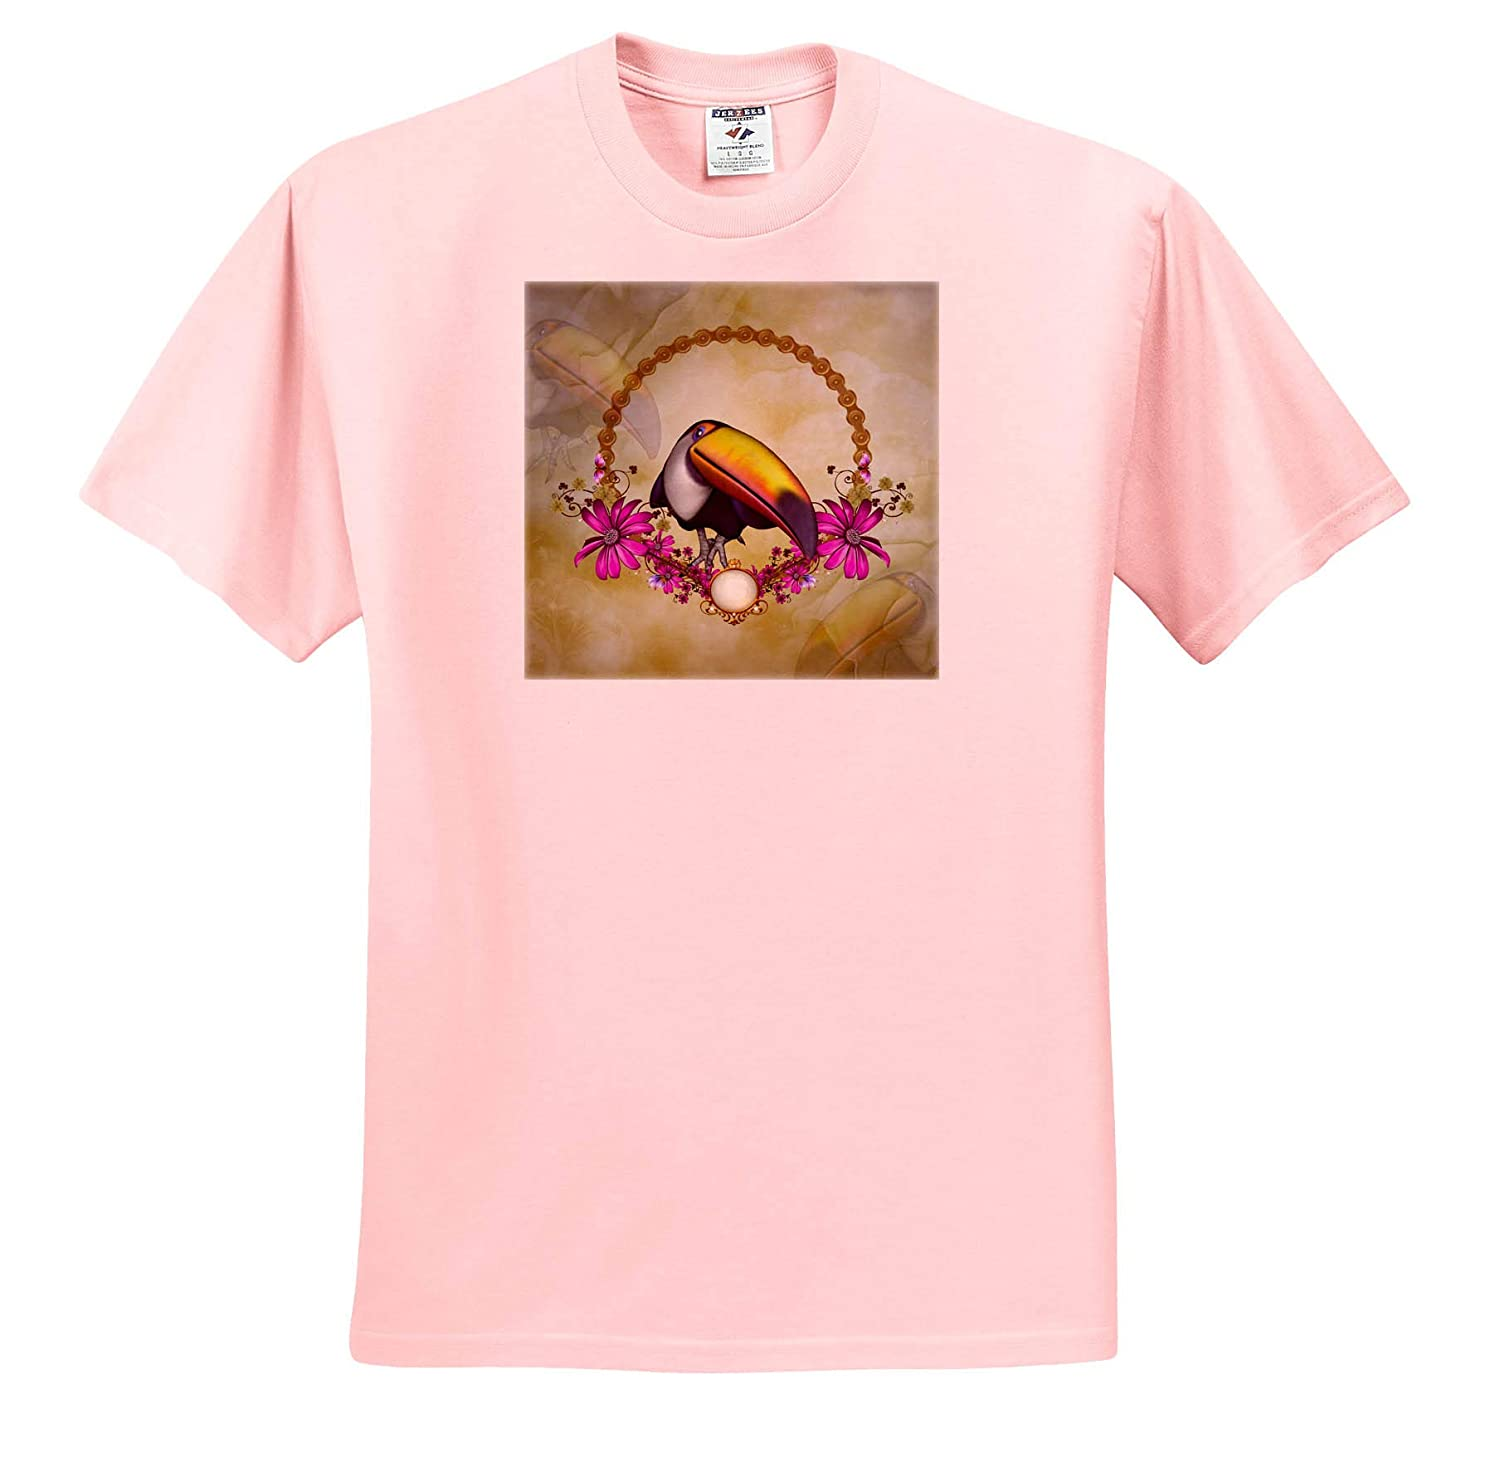 Funny Toucan with Flowers Adult T-Shirt XL 3dRose Heike K/öhnen Design Animal ts/_310255